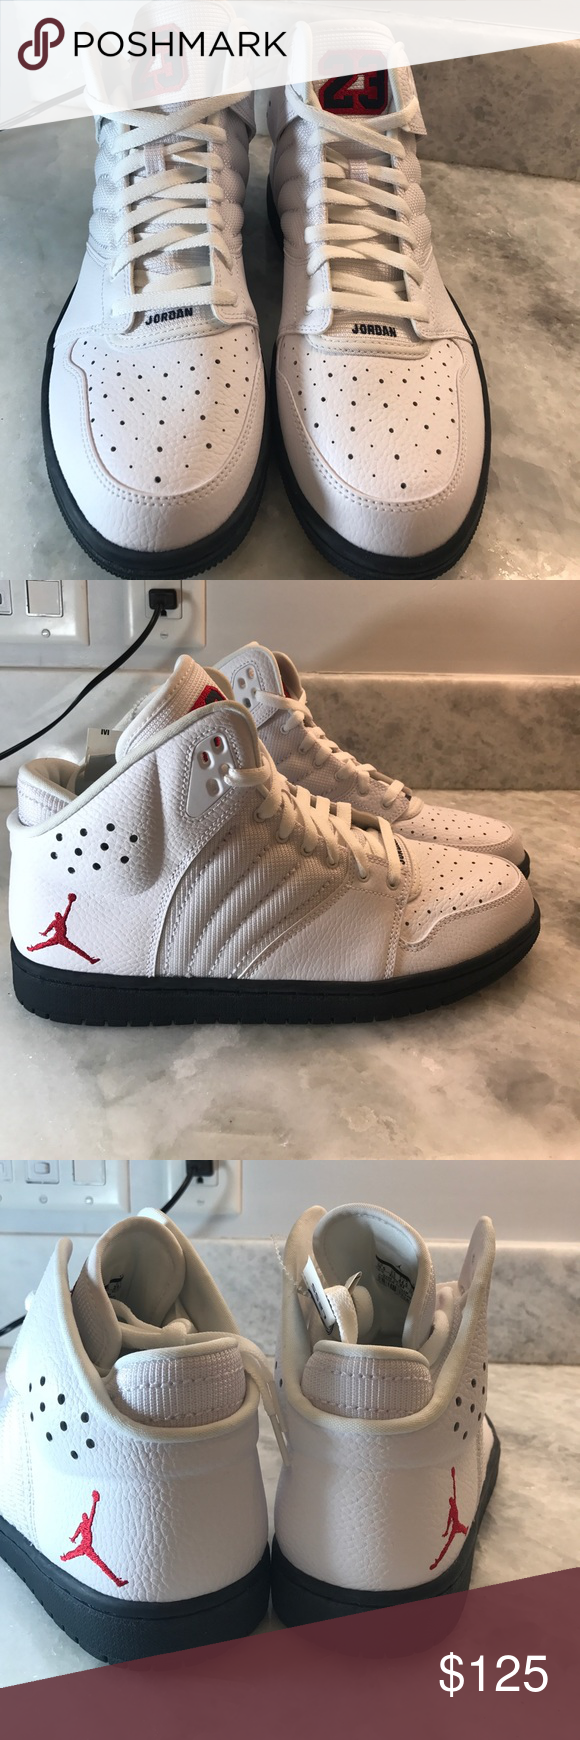 981115ff92f JORDAN 1 FLIGHT 4 PREMIUM MENS 10 1/2. NWT STYLE # 838818 164. Leather  Jordan's 23 white NWT. P53bag Nike Shoes Sneakers